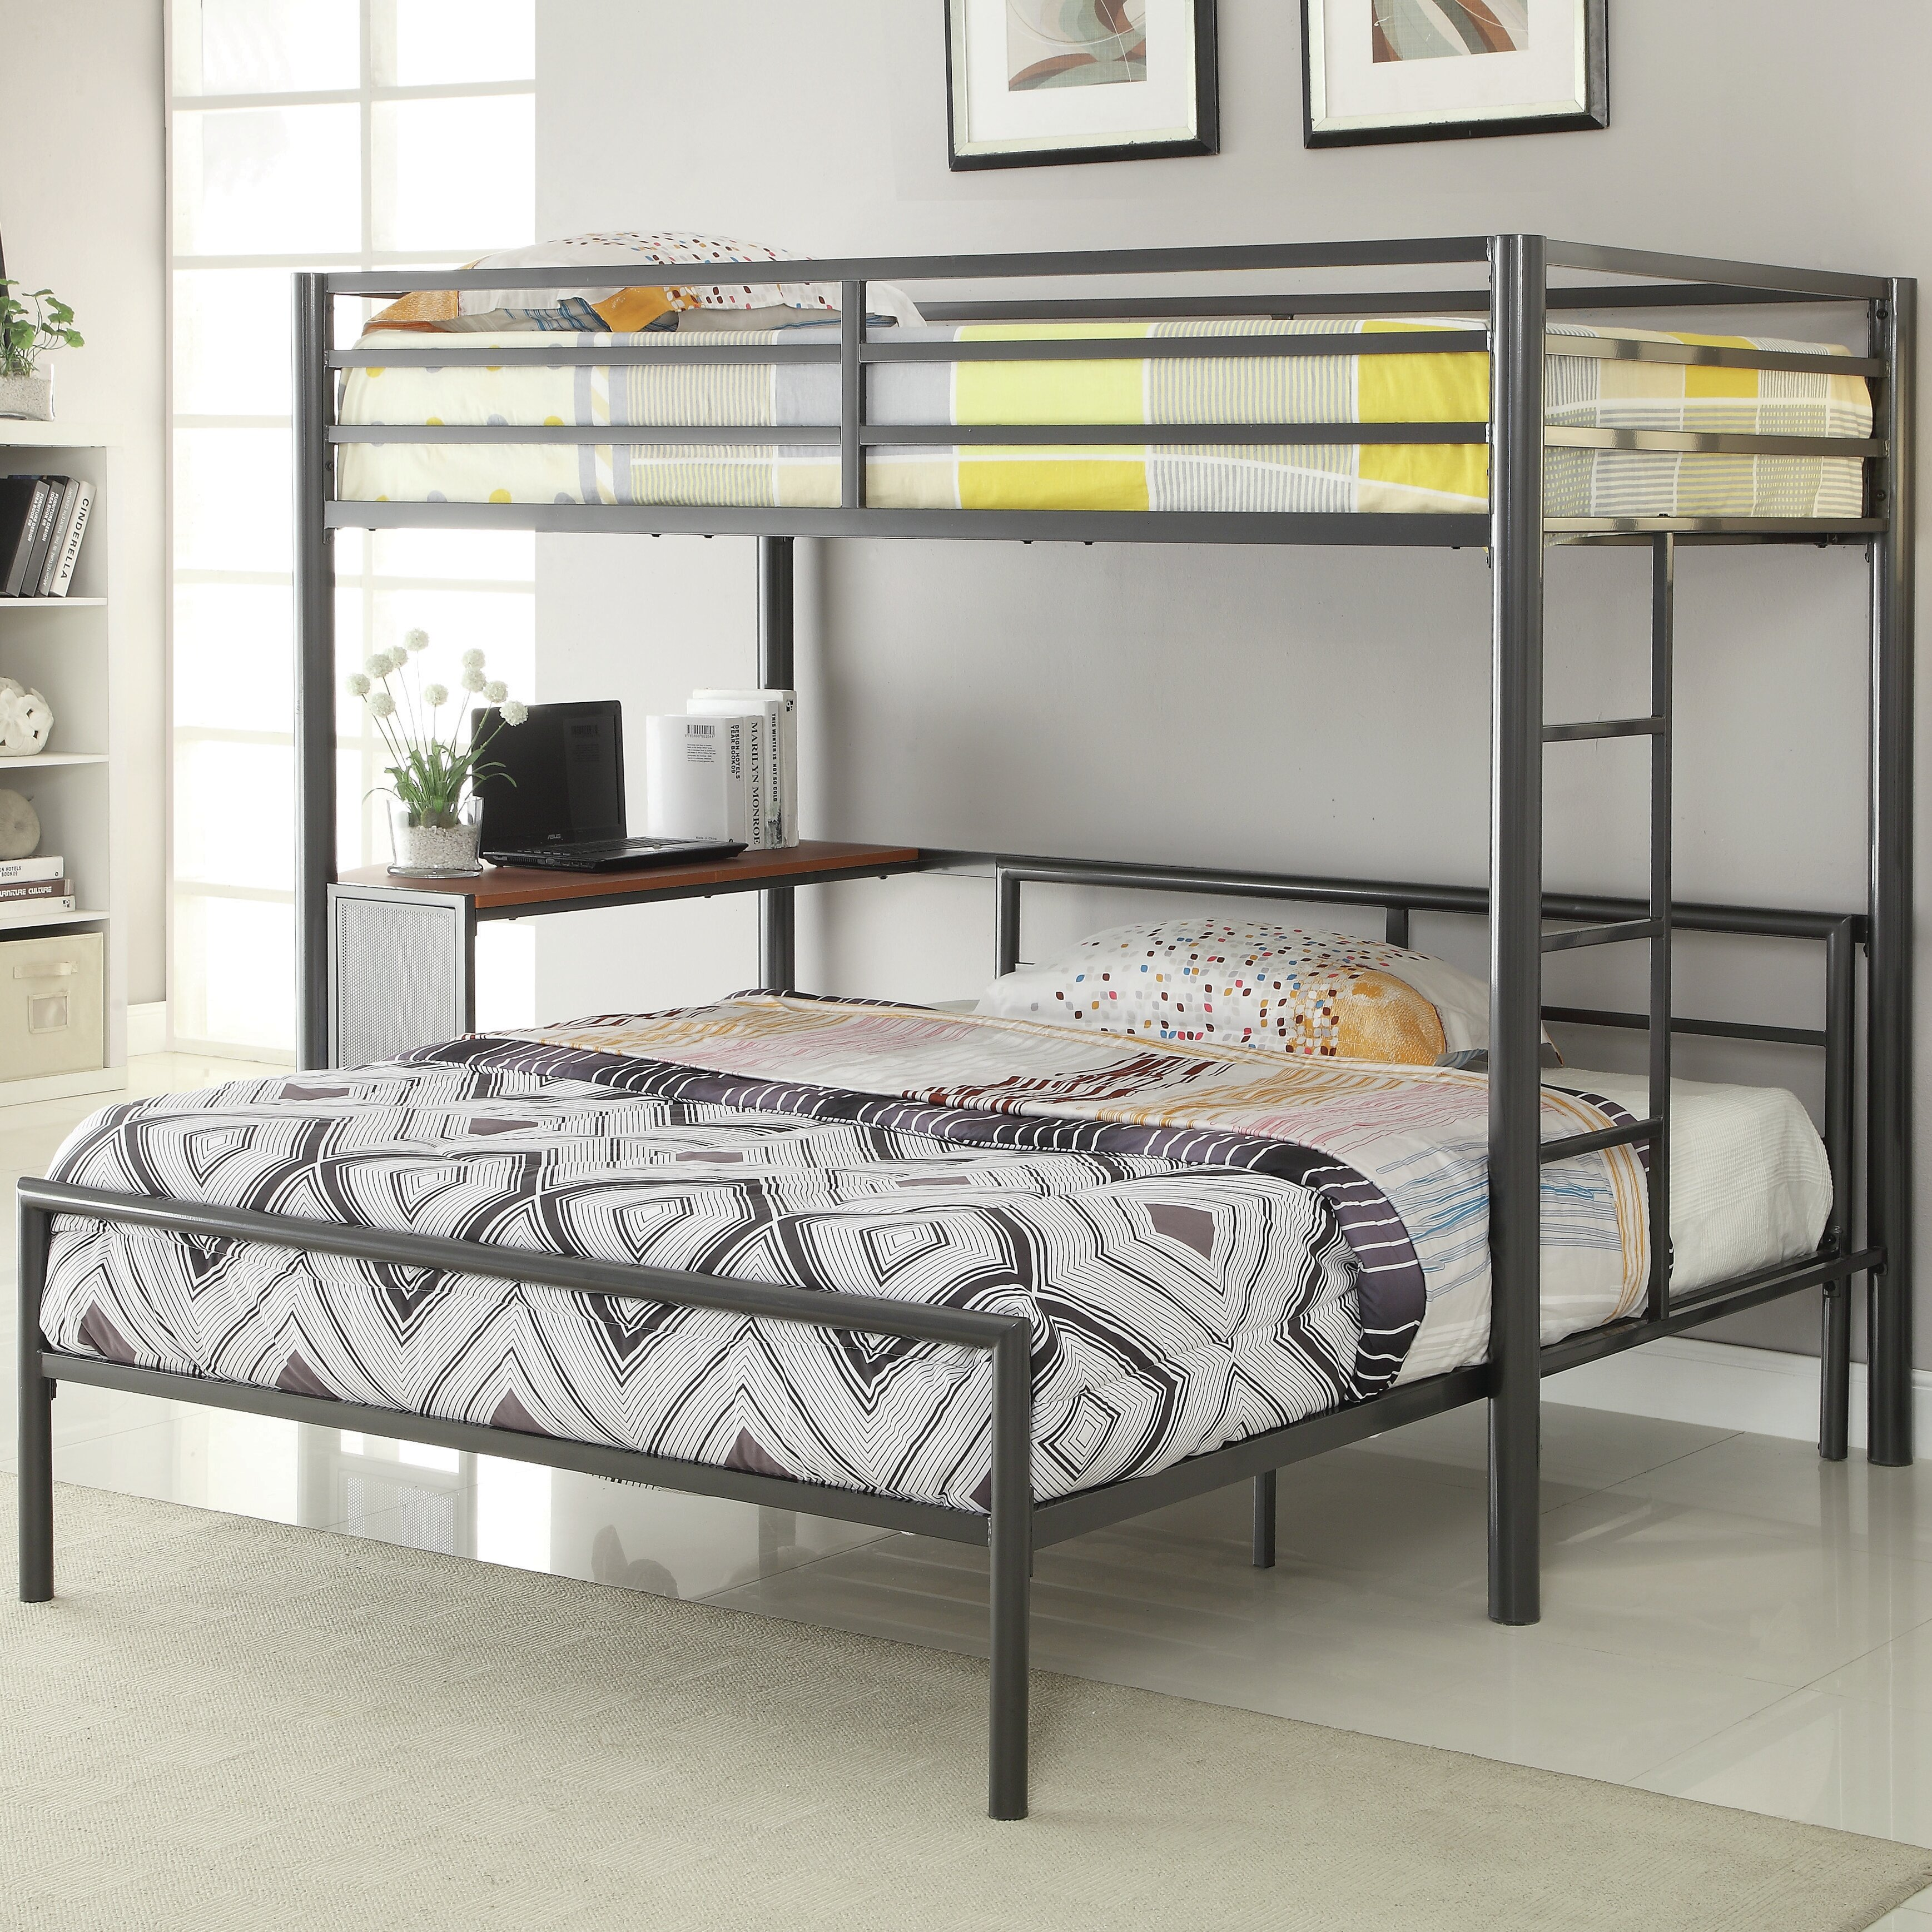 804bedf2edb Harriet Bee Nedra Twin Over Full L-Shaped Bunk Bed   Reviews